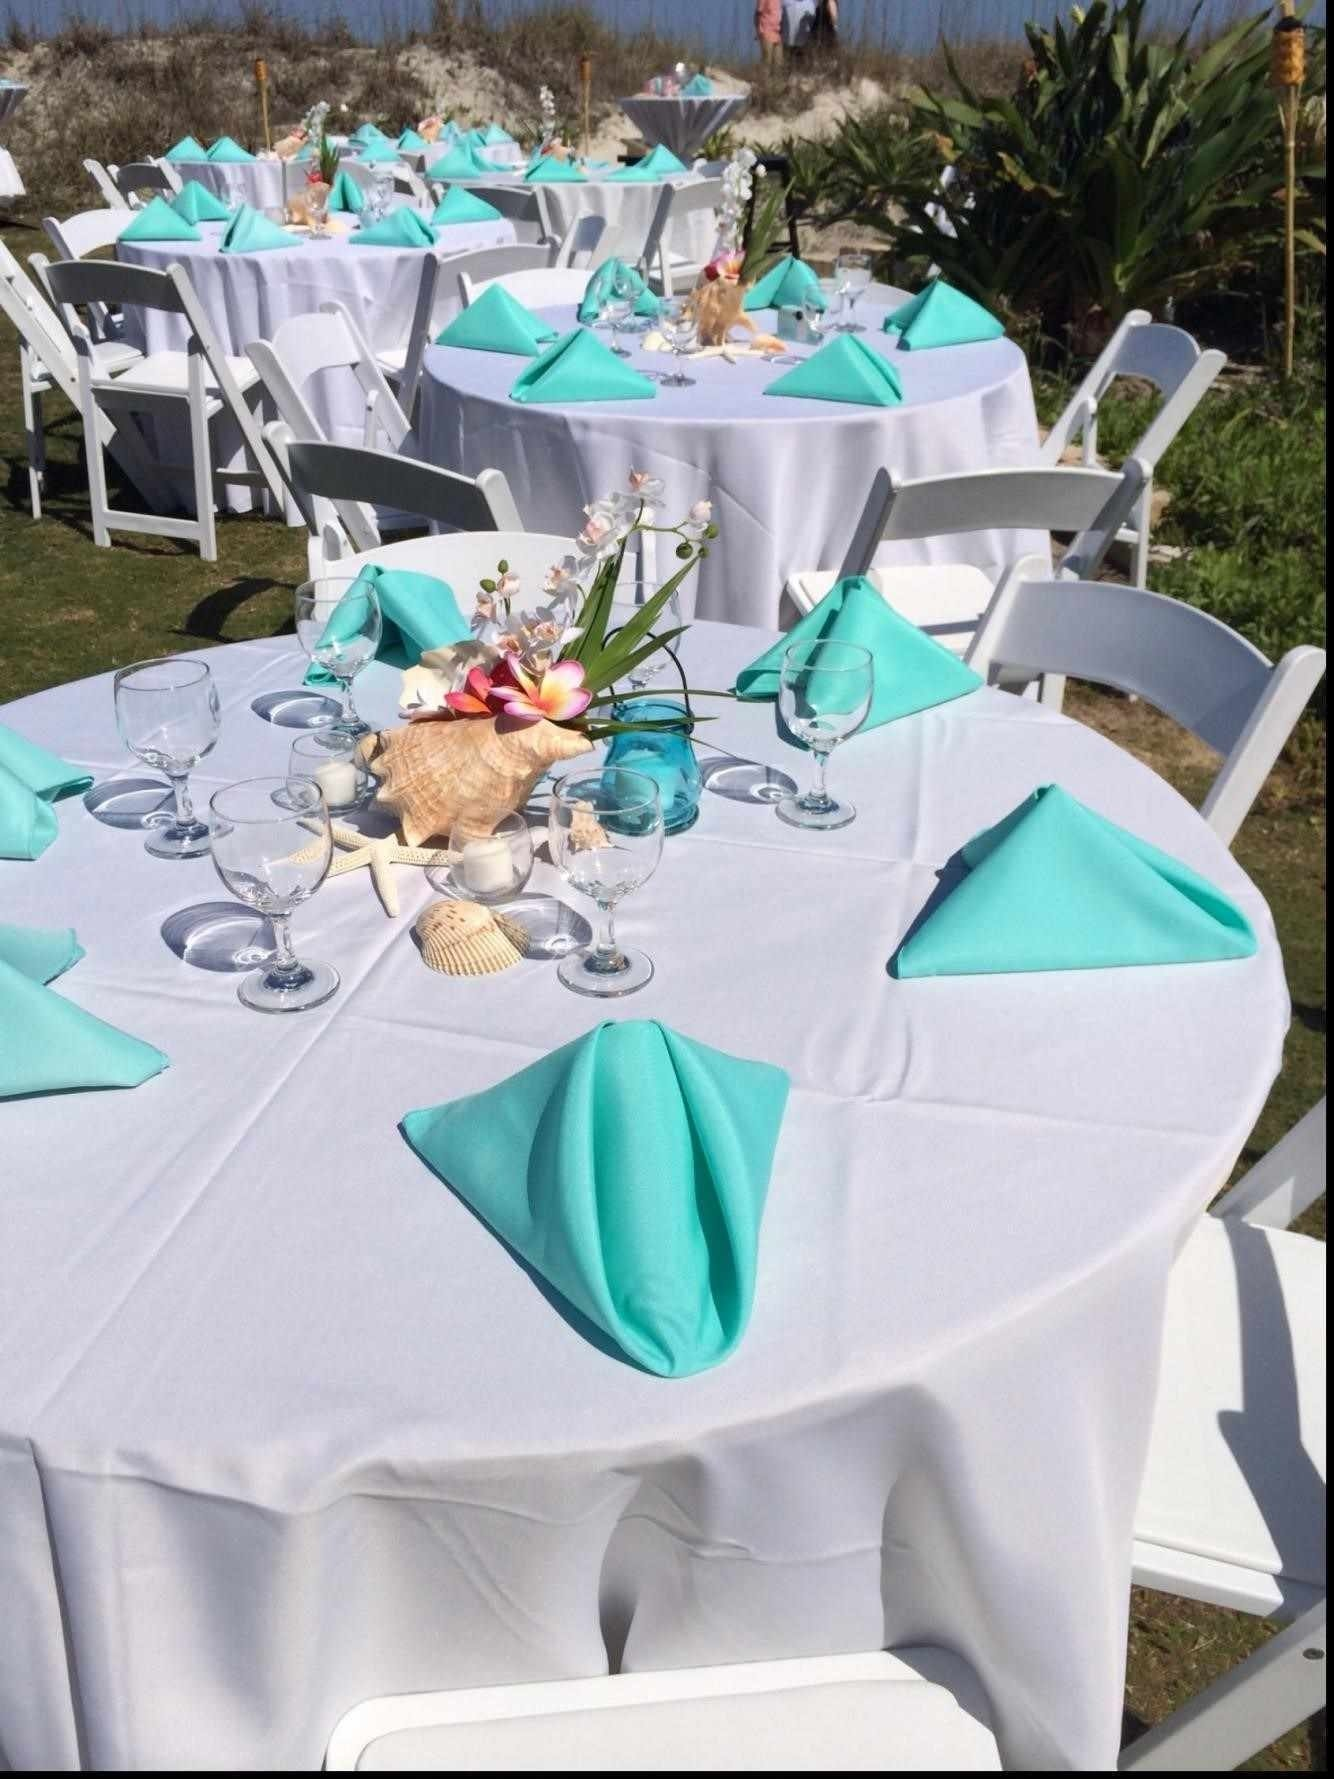 10 Stylish Beach Theme Wedding Reception Ideas